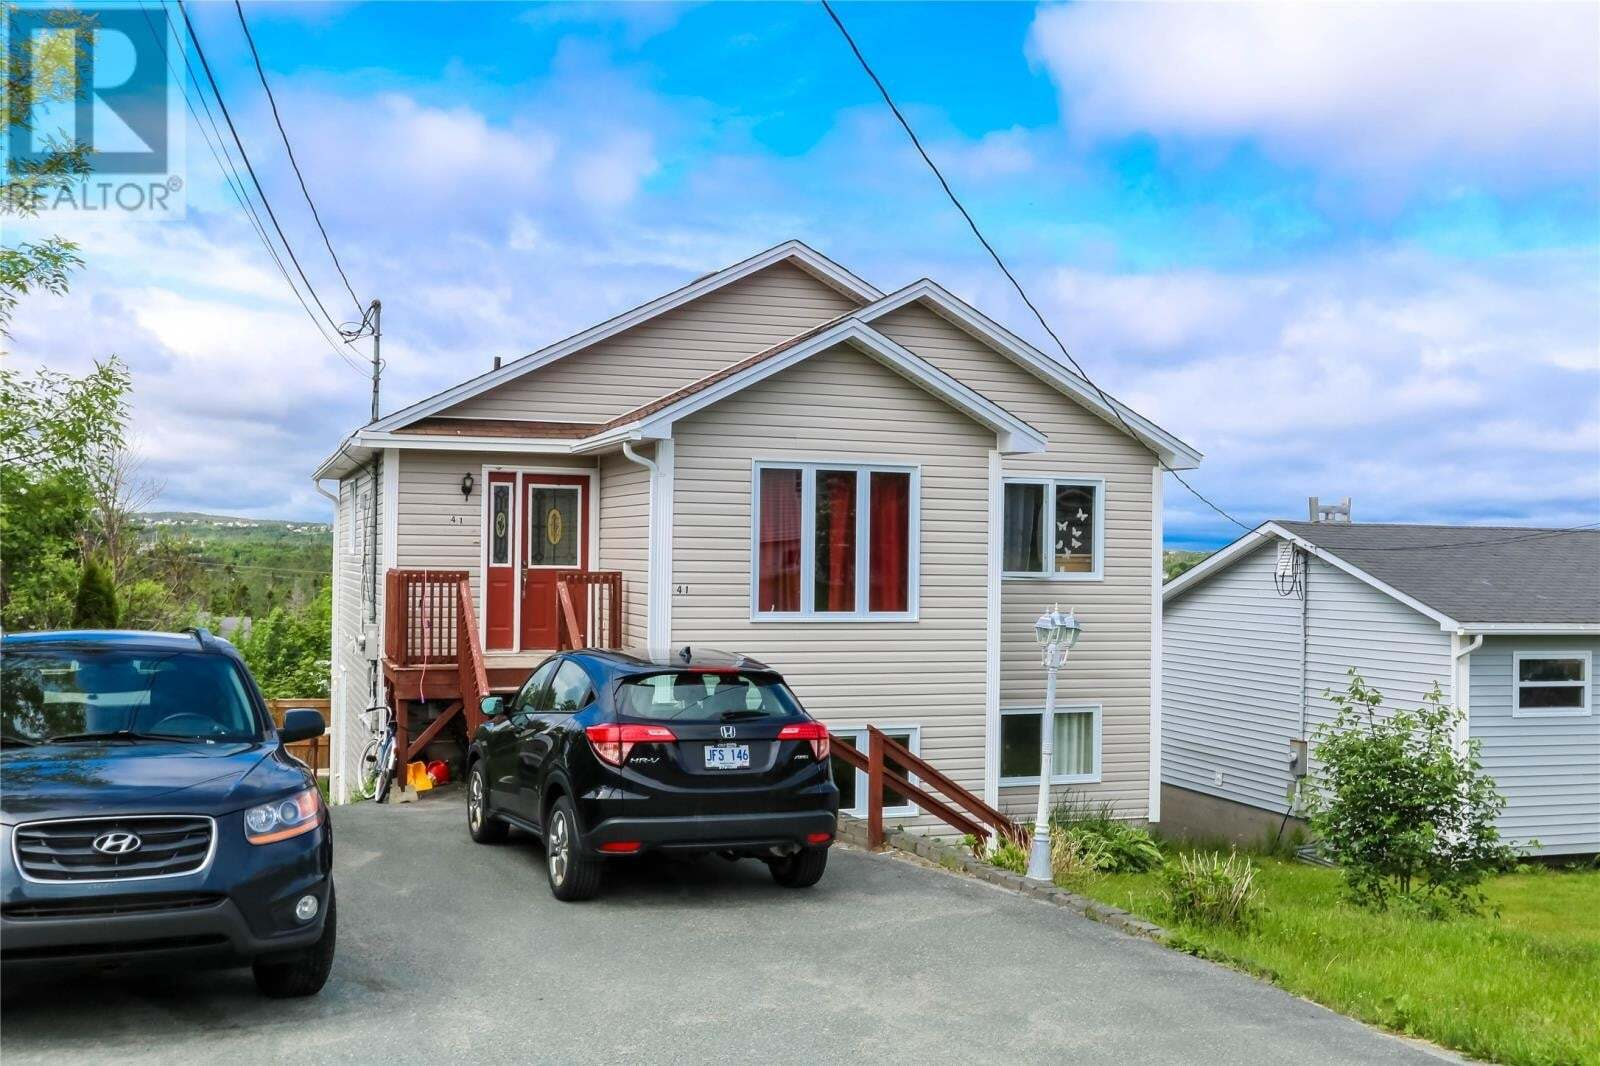 House for sale at 41 Readers Hill Cres Conception Bay South Newfoundland - MLS: 1214477